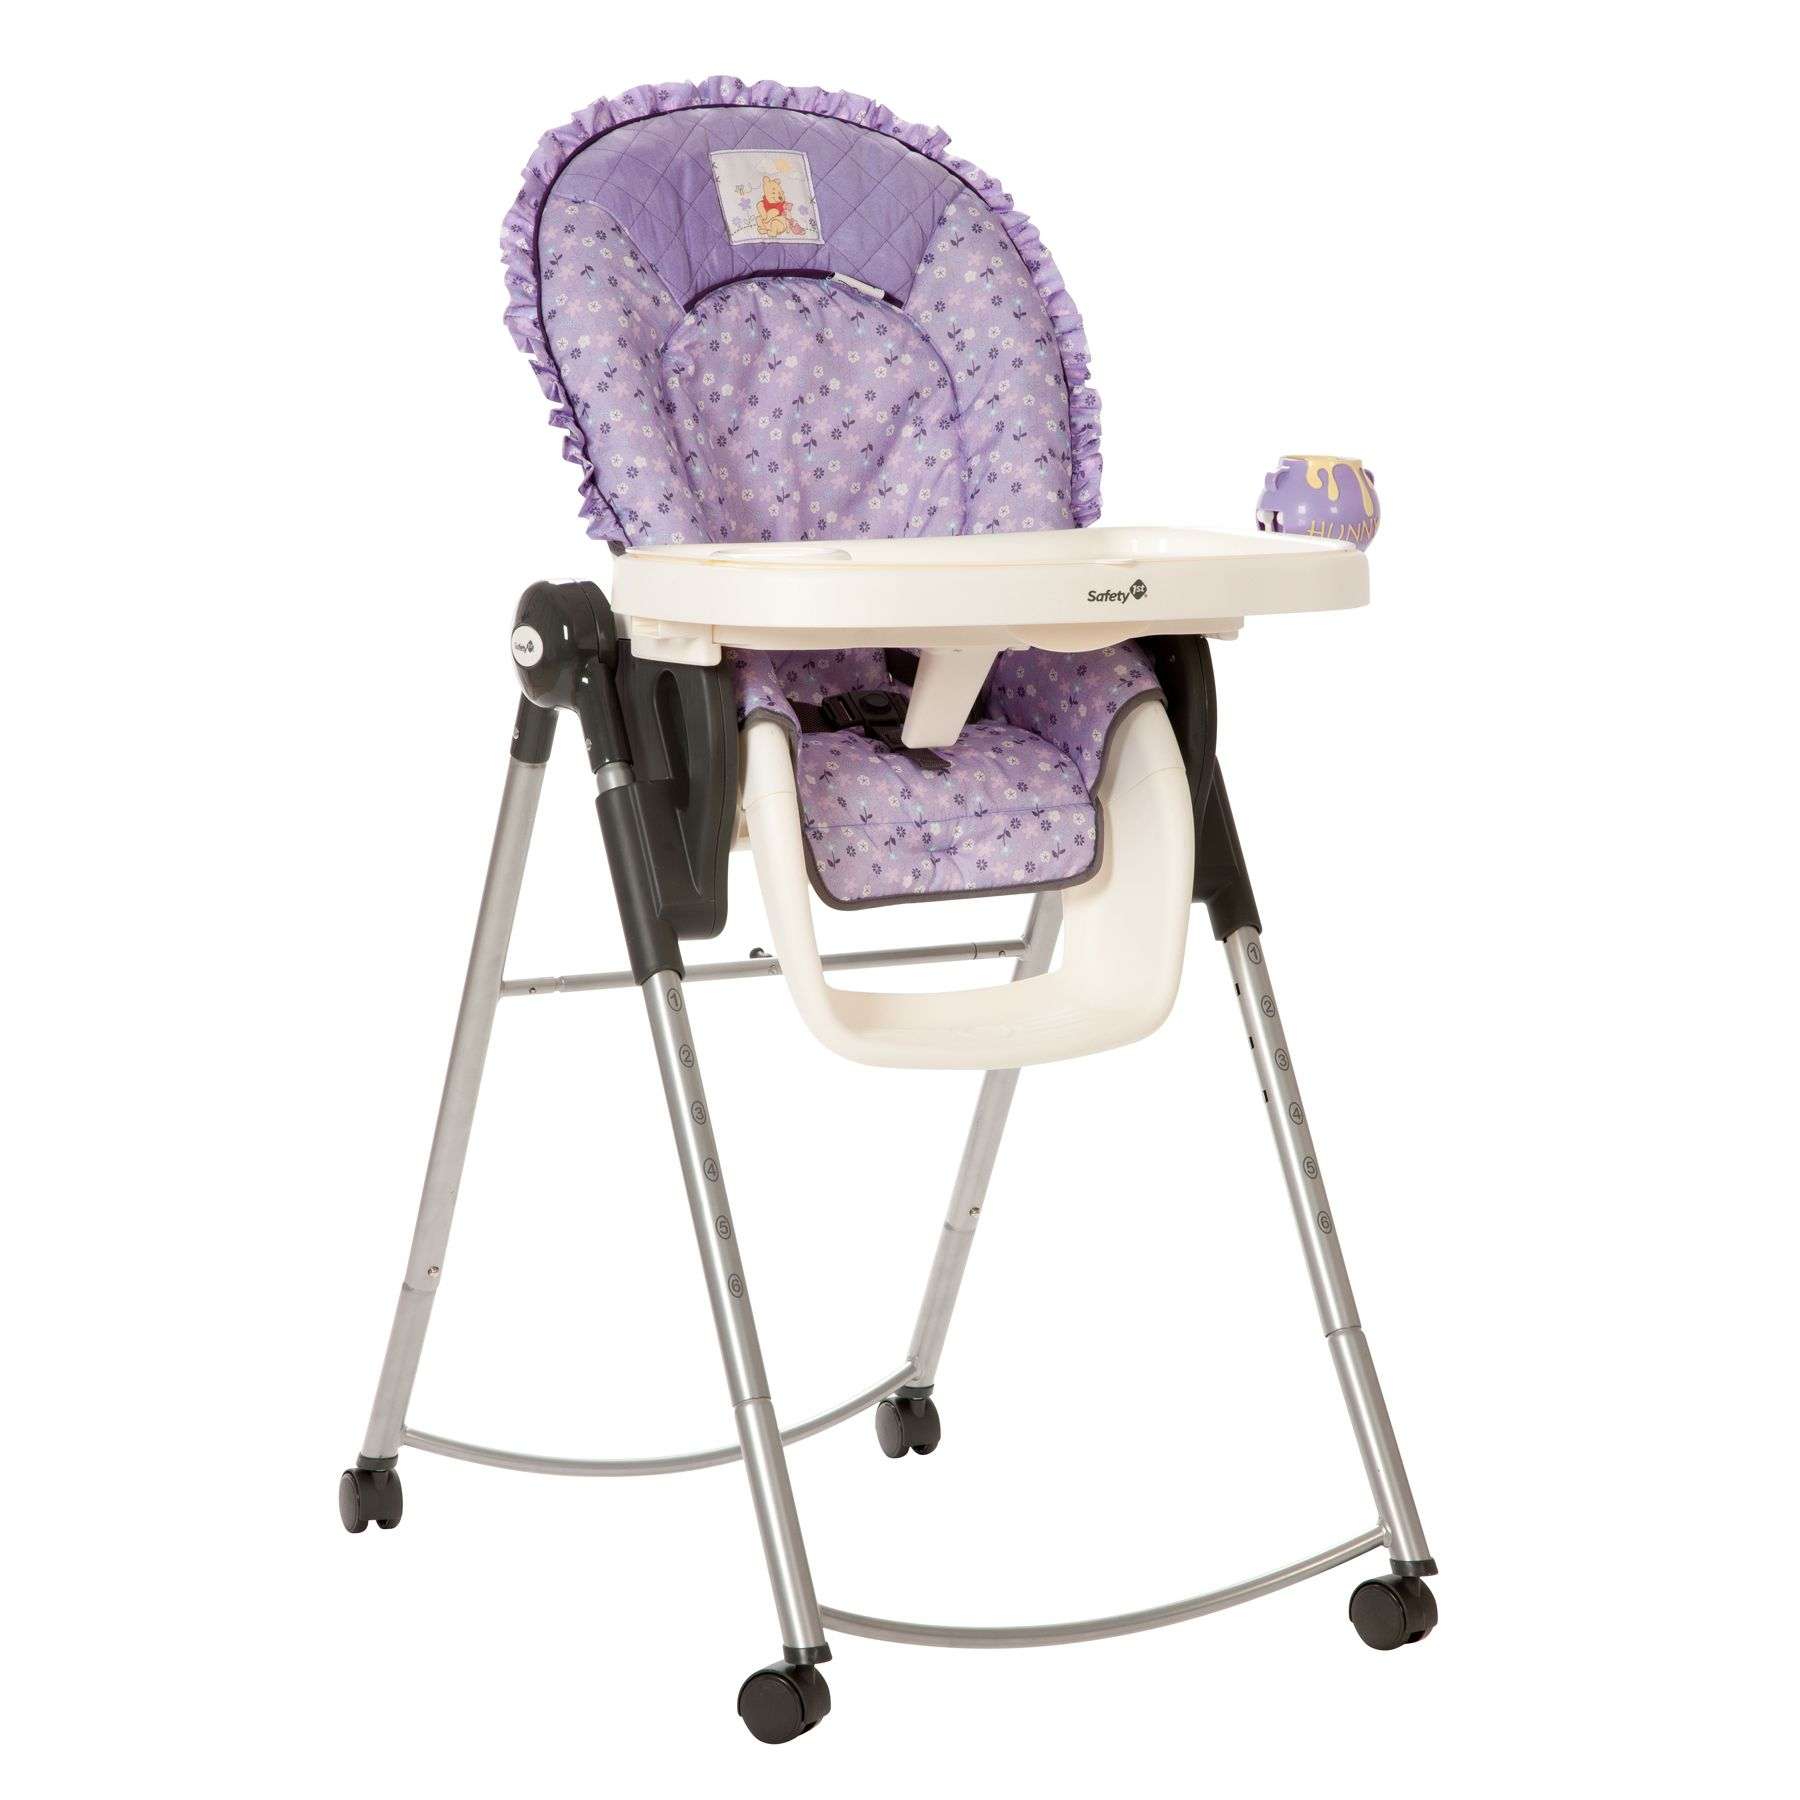 Pooh S Garden Adjustable High Chair From Safety 1st Baby